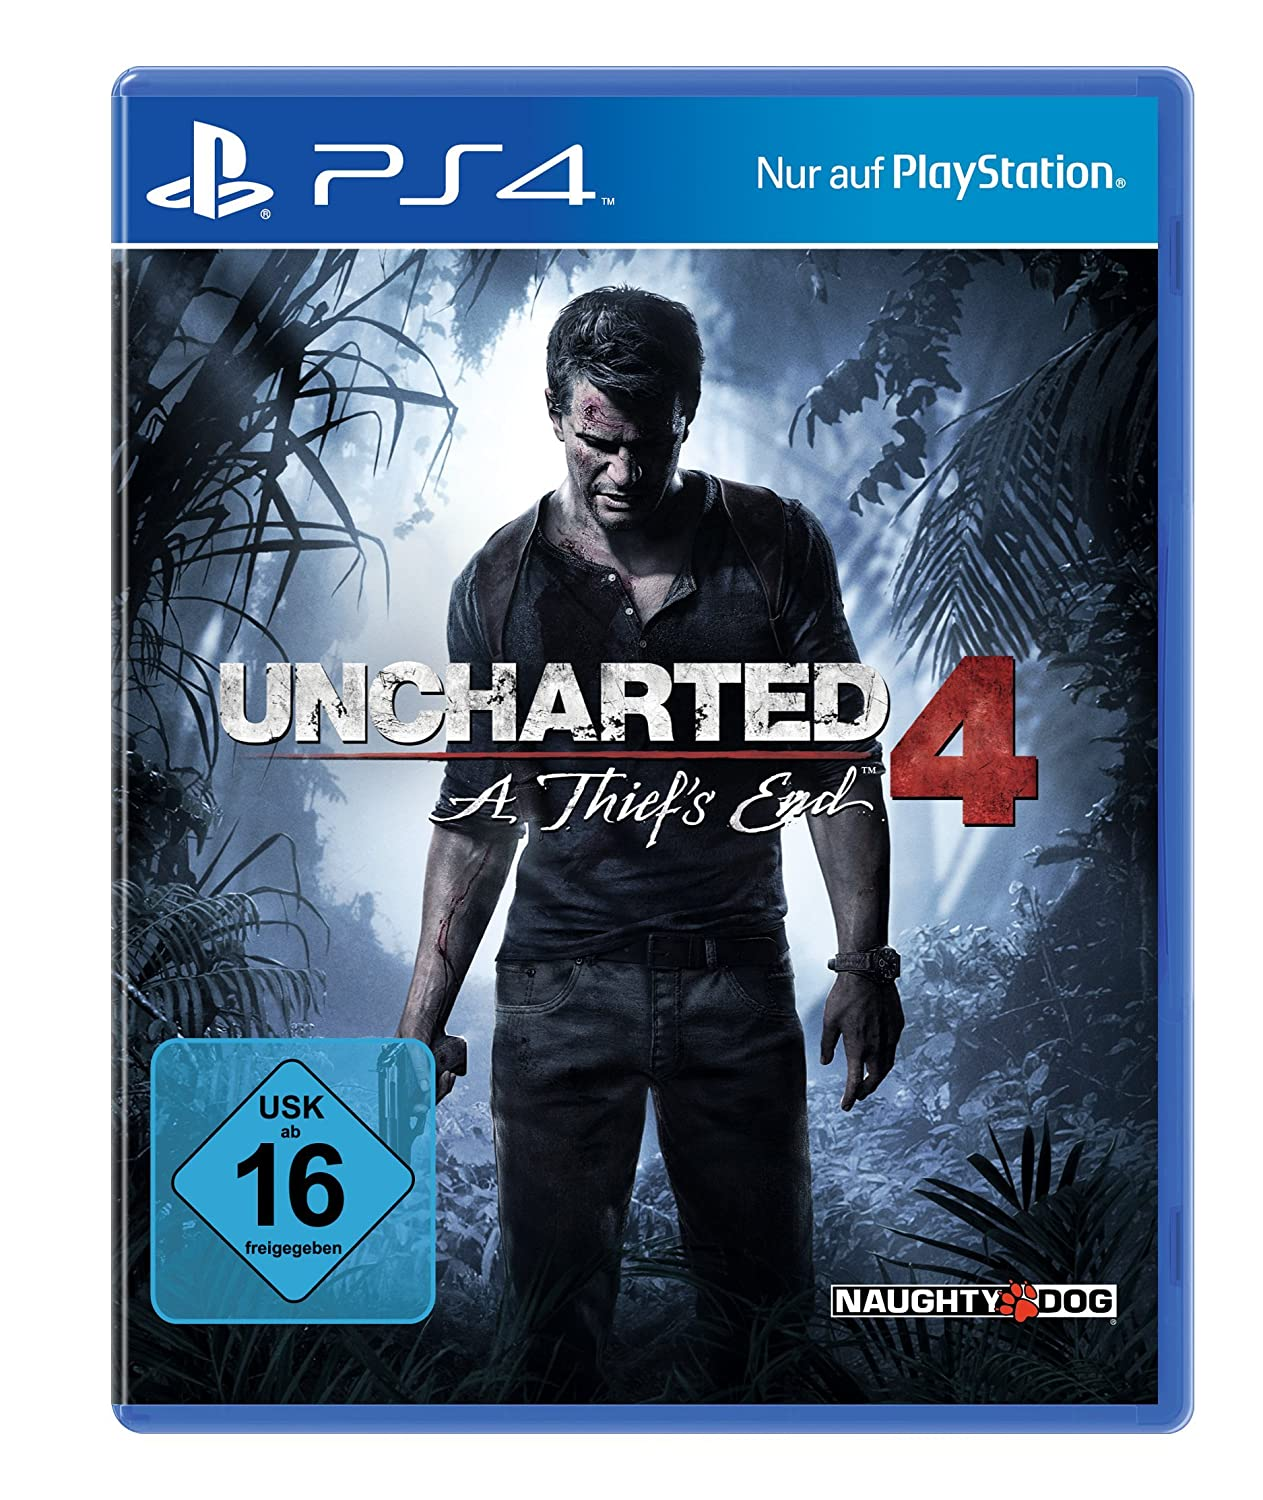 Uncharted 4 PS4 amazon